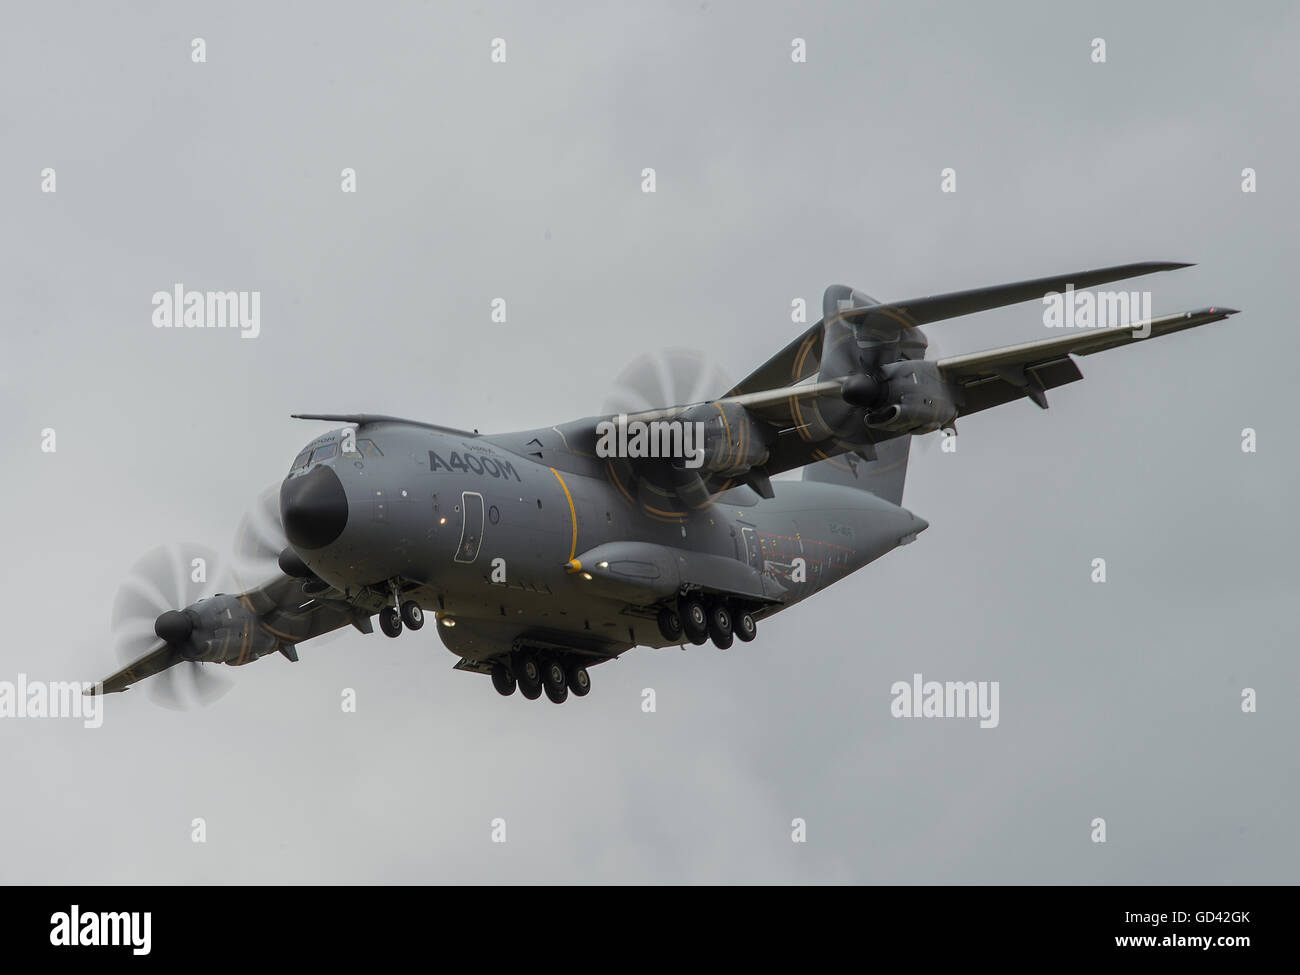 Farnborough, Hampshire UK. 12th July 2016. Airbus Military A400M flying demo. Day 2 of the Farnborough International - Stock Image